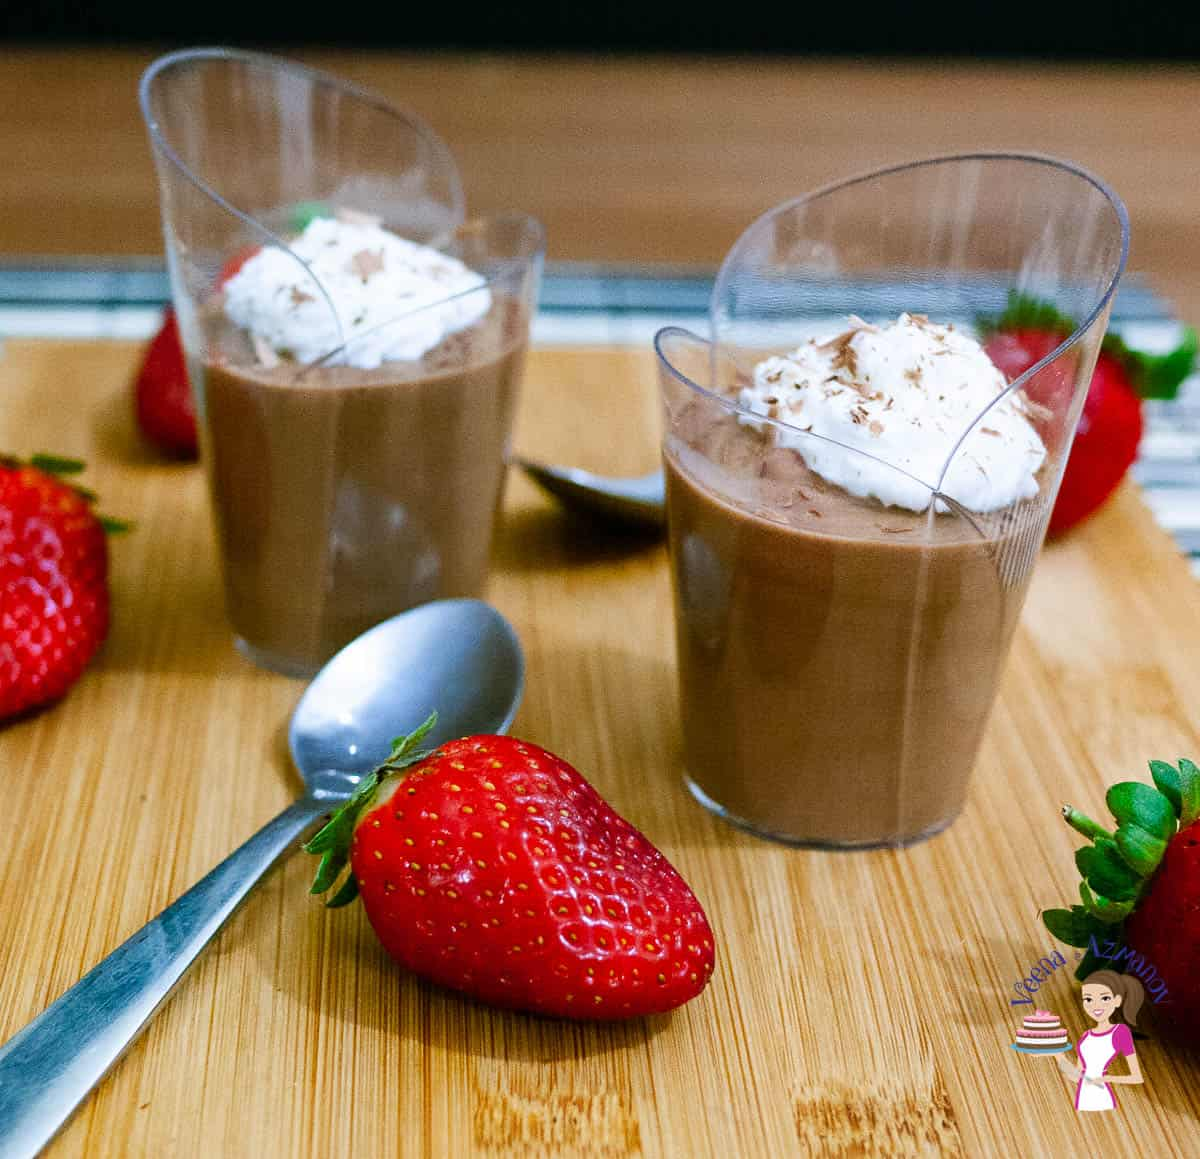 Chocolate mousse glasses for two